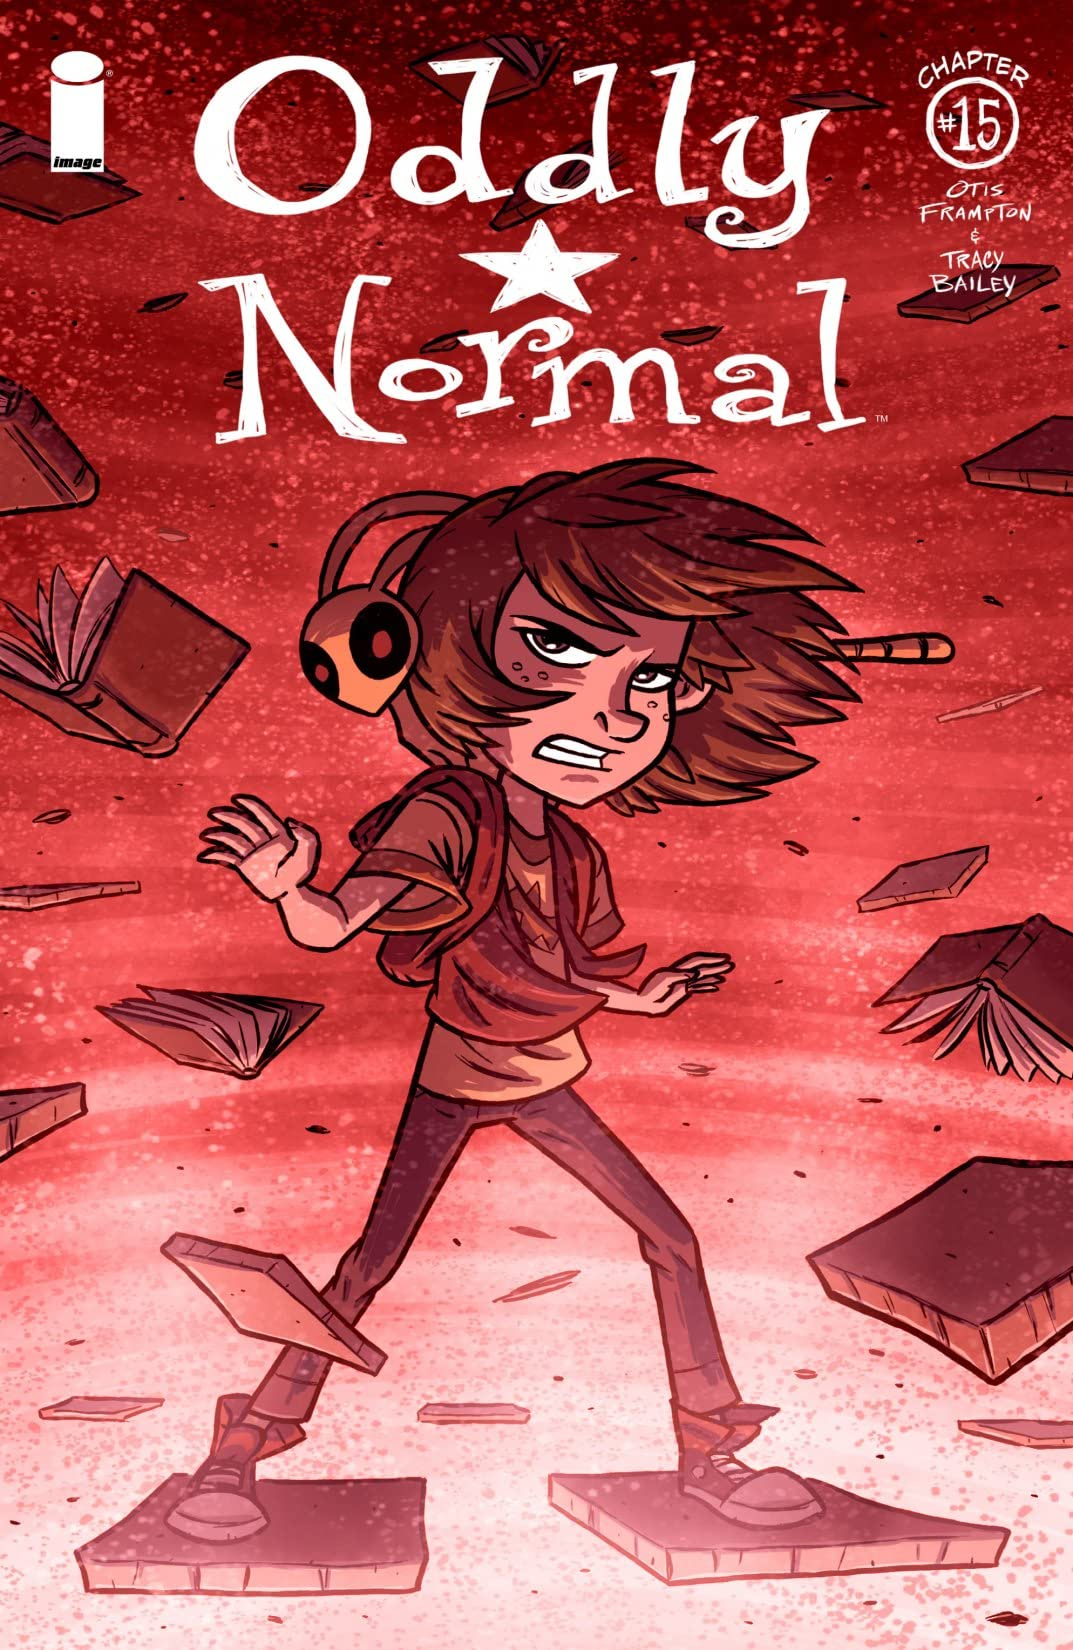 Oddly Normal #15